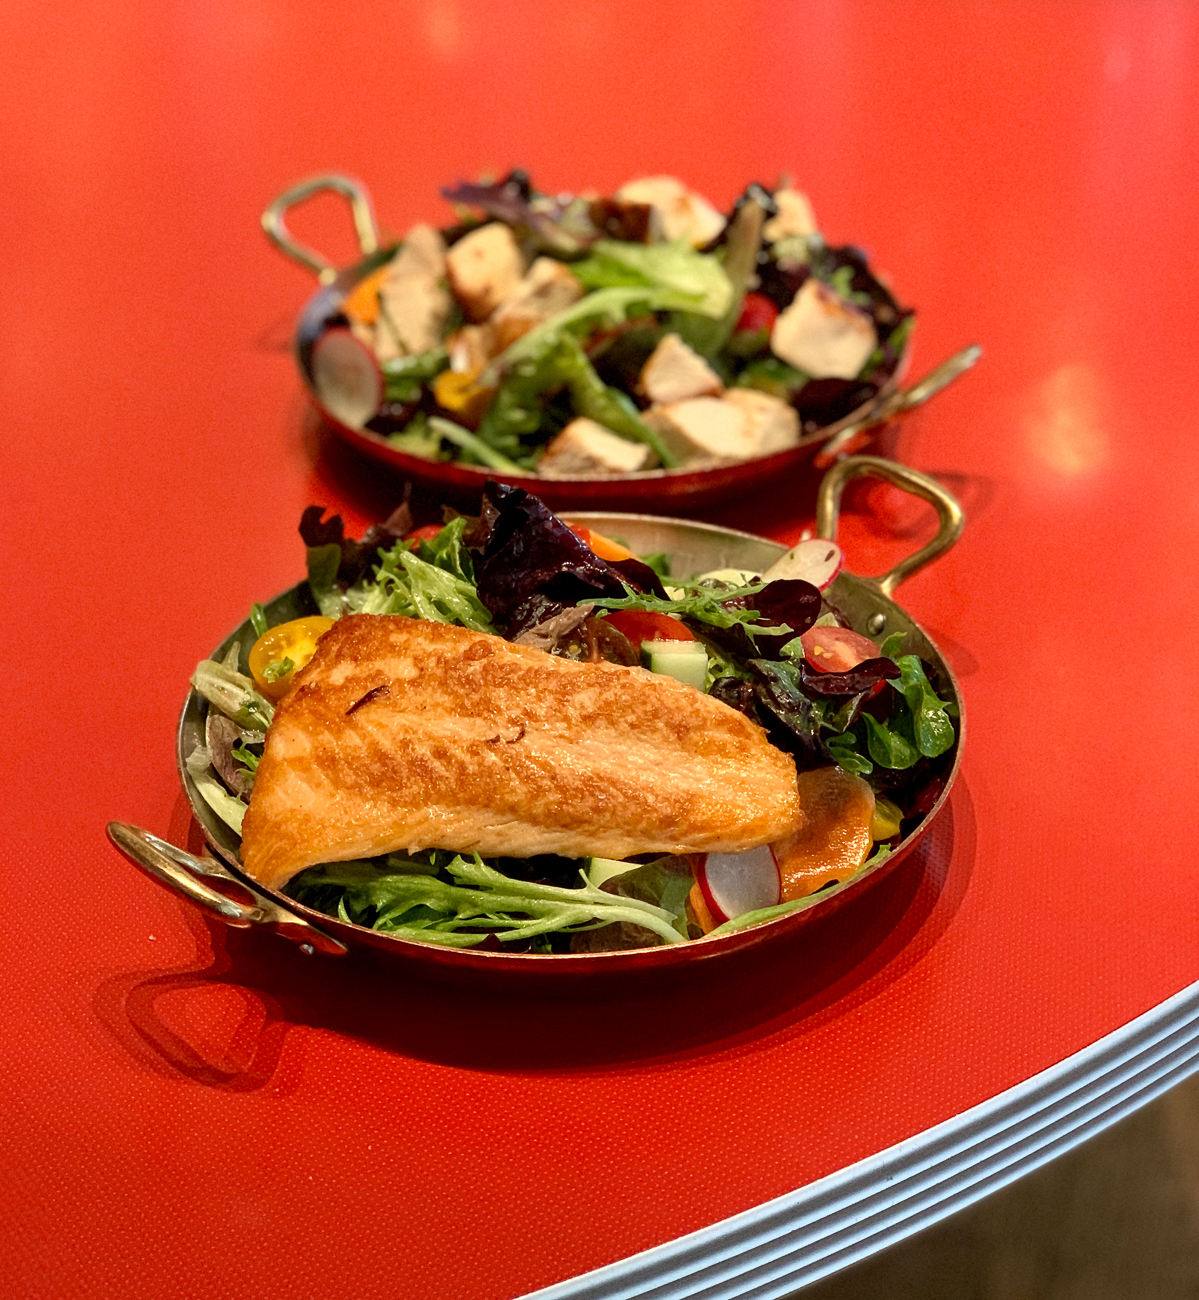 Salmon salad / Image courtesy of The Mercer OTR // Published: 5.14.20